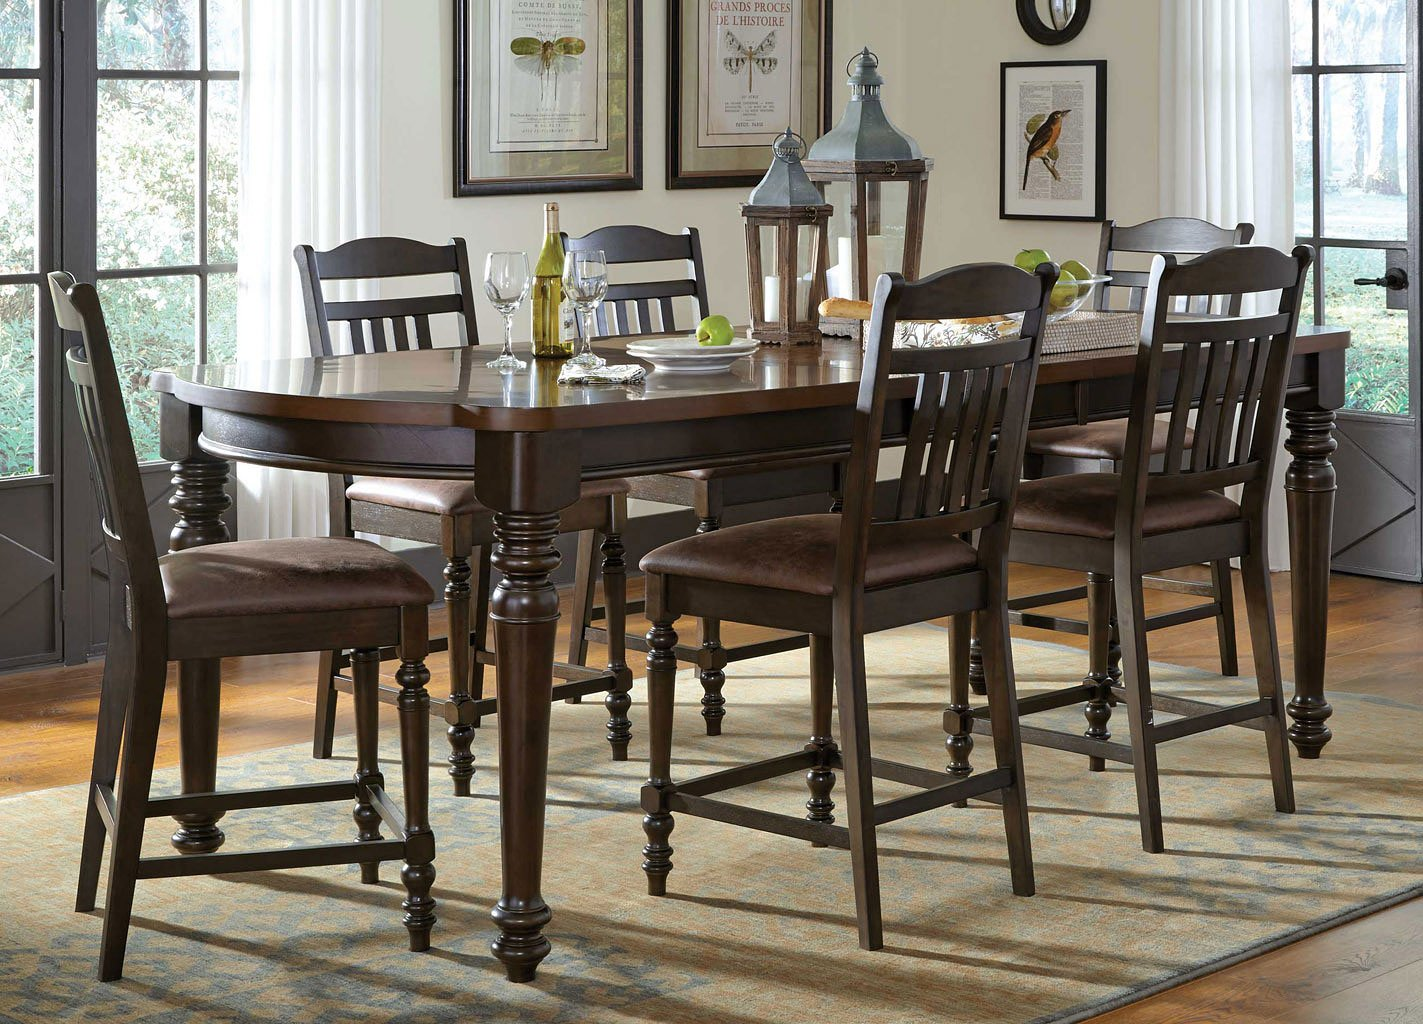 Mulligan counter height dining room set casual dining sets dining room and kitchen furniture - Casual kitchen sets ...